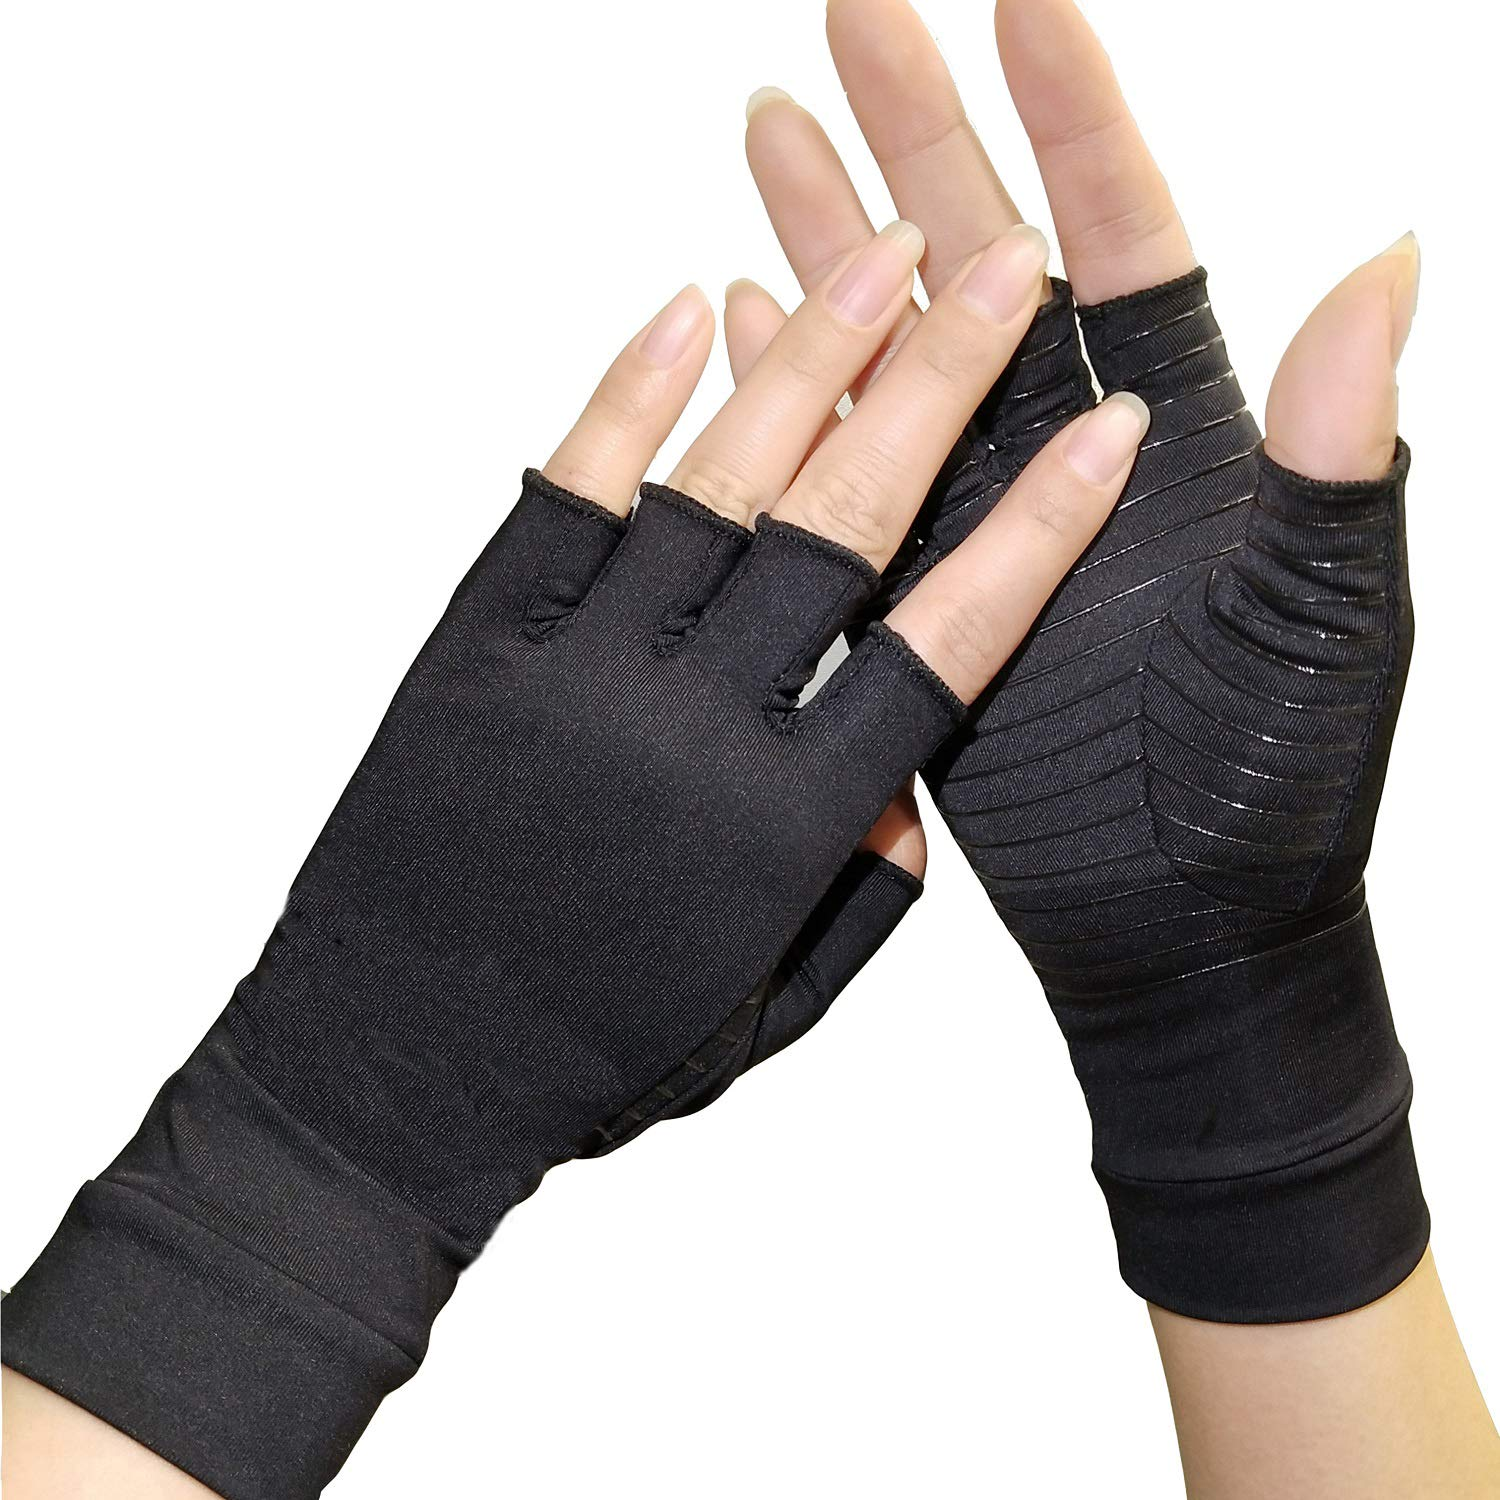 Arthritis Compression Gloves - Copper Gloves for Arthritis Hand Pain,Rheumatoid, Swelling and Computer Typing for Women and Men (1 Pair) (M) by JIUFENTIAN